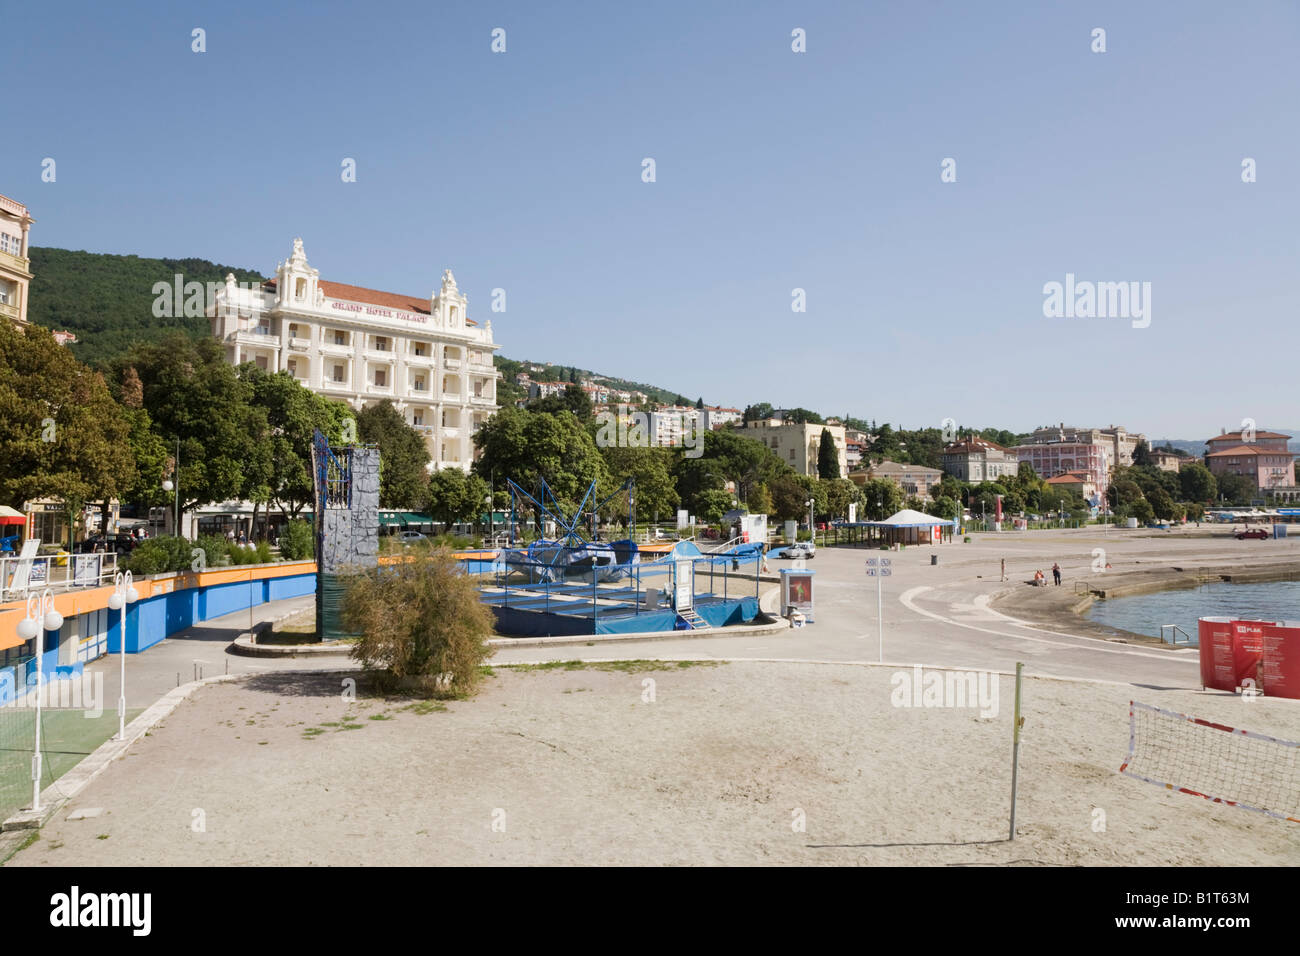 Opatija Istria Croatia Europe May Man-made concrete beach on seafront in tourist seaside resort on Kvarner coast - Stock Image